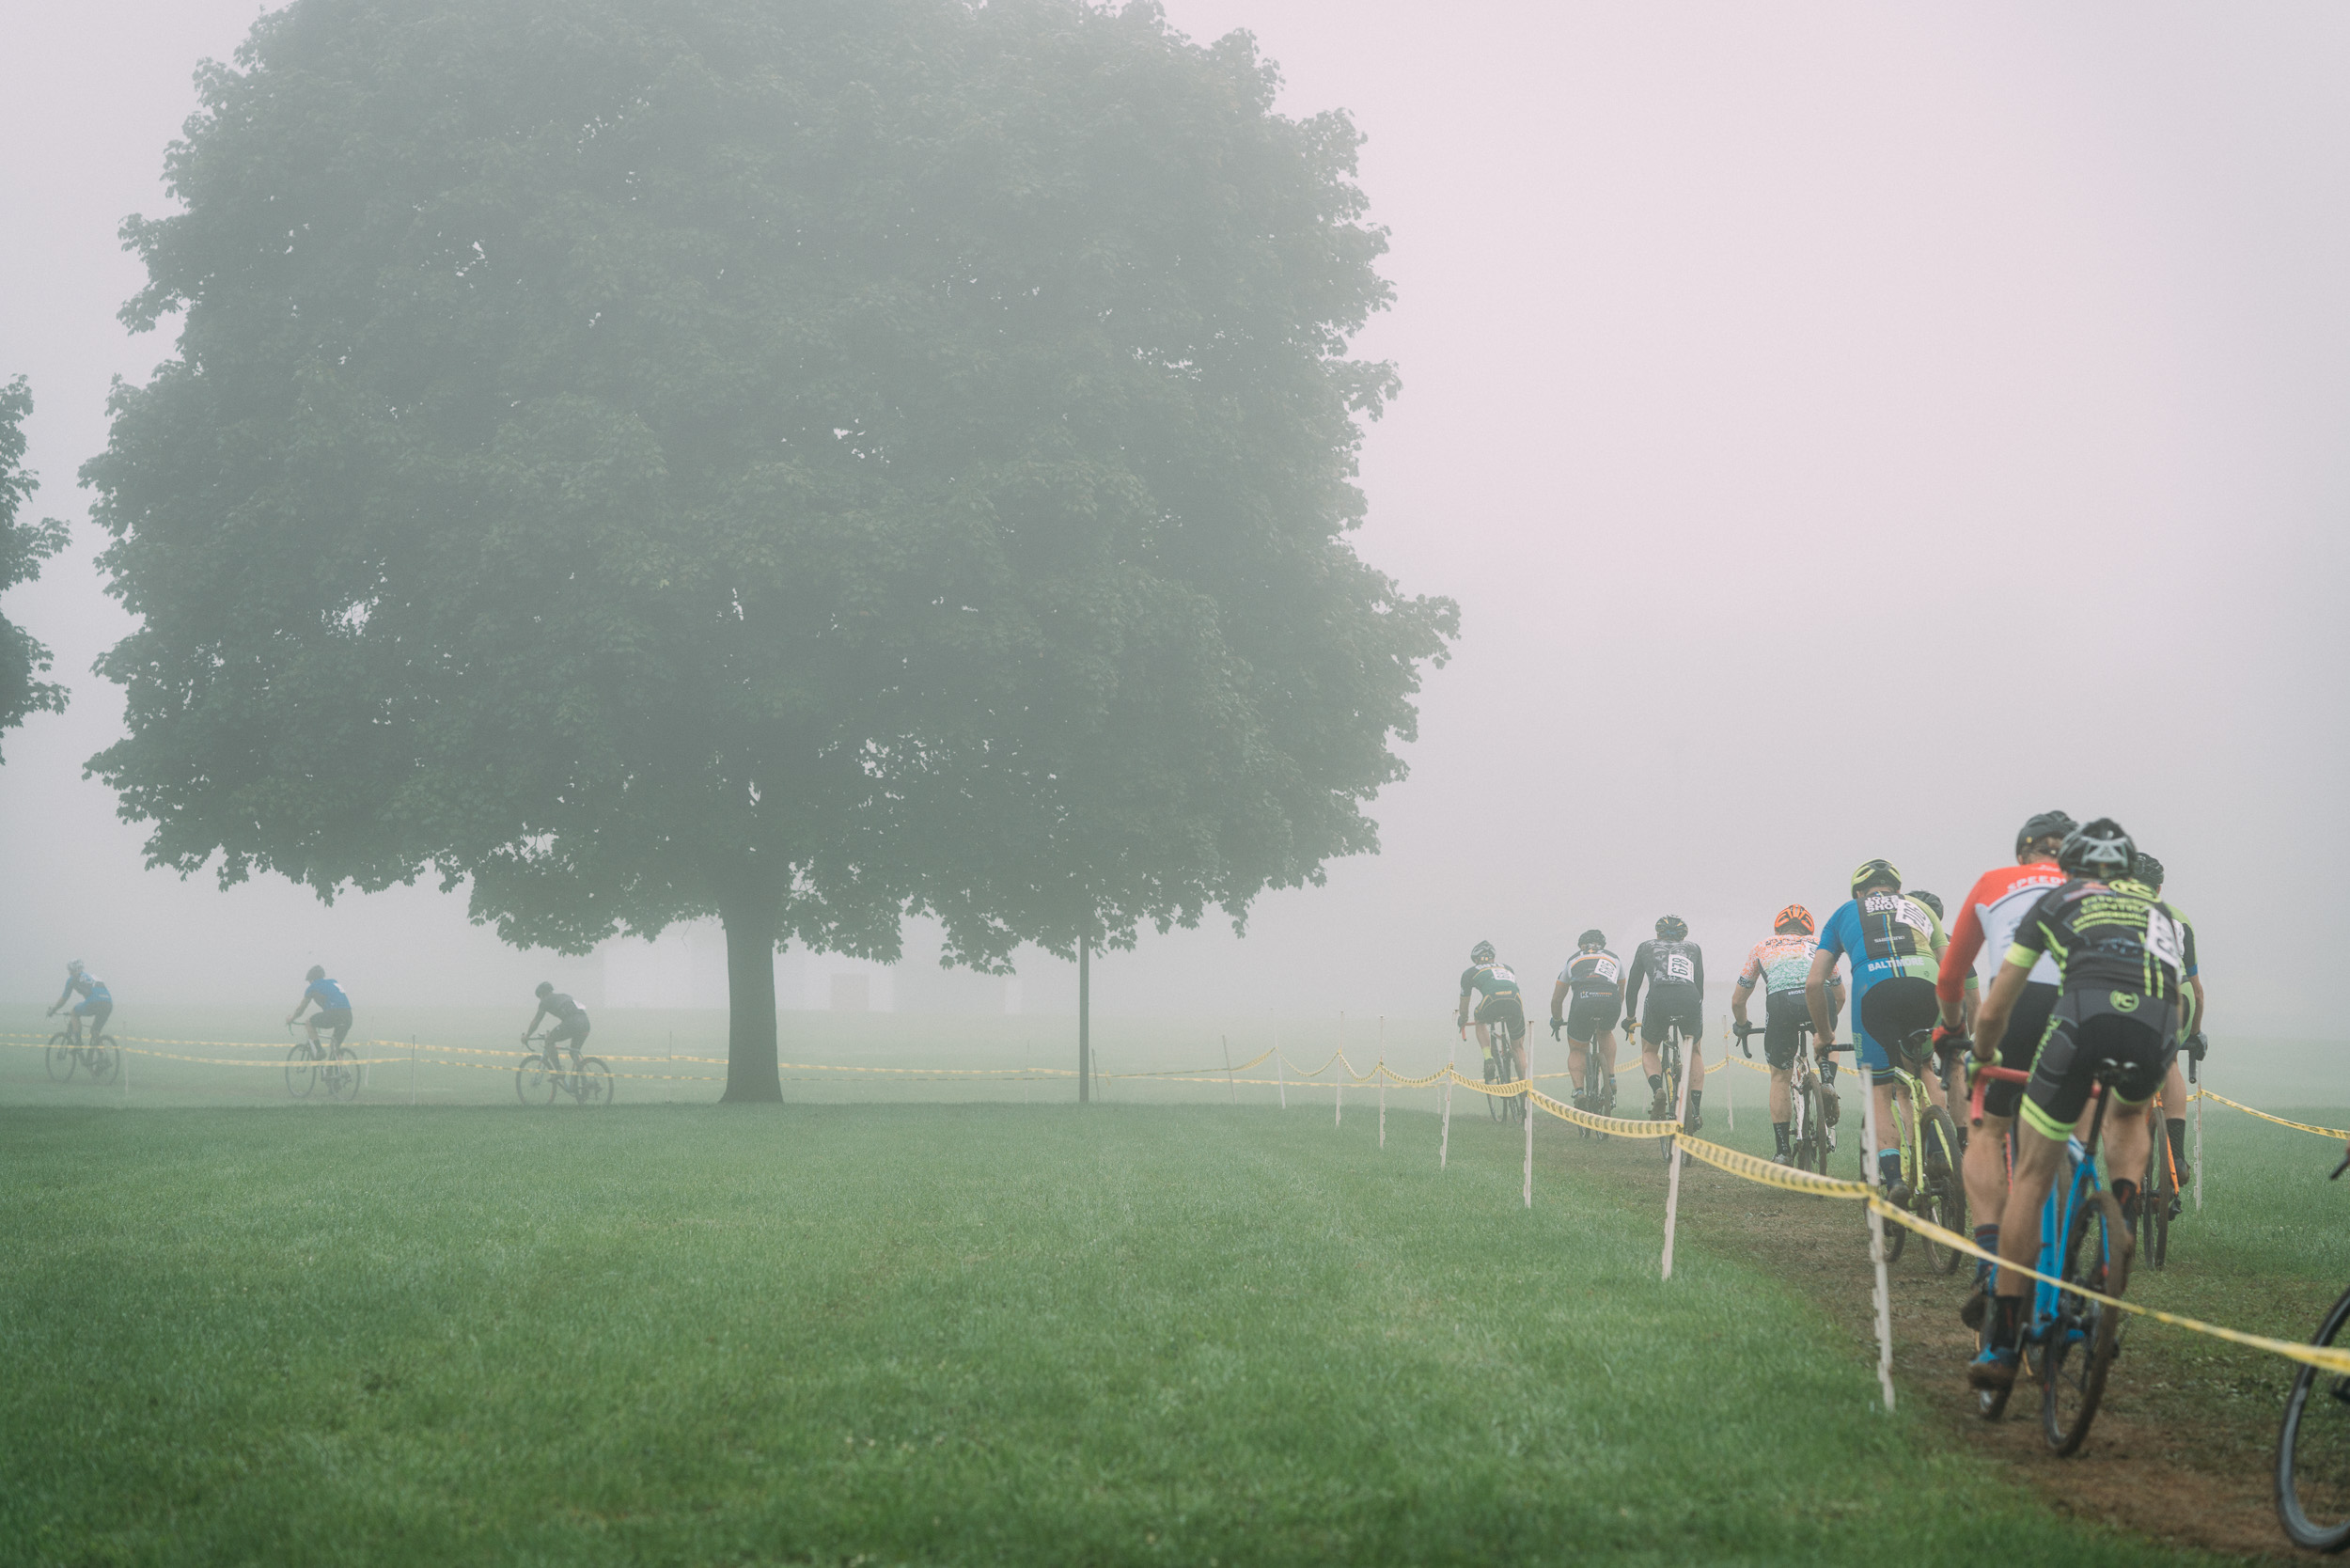 The Nittany Lion Cyclocross venue was enshrouded in fog for much of the morning on Sunday.